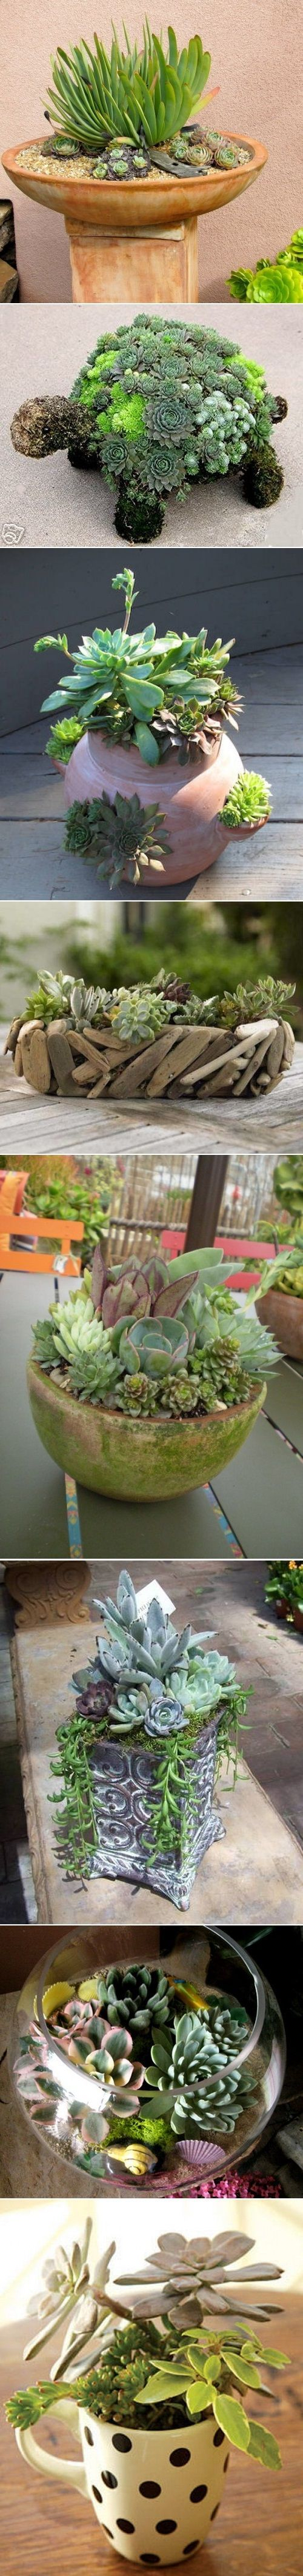 DIY Succulent Garden Ideas